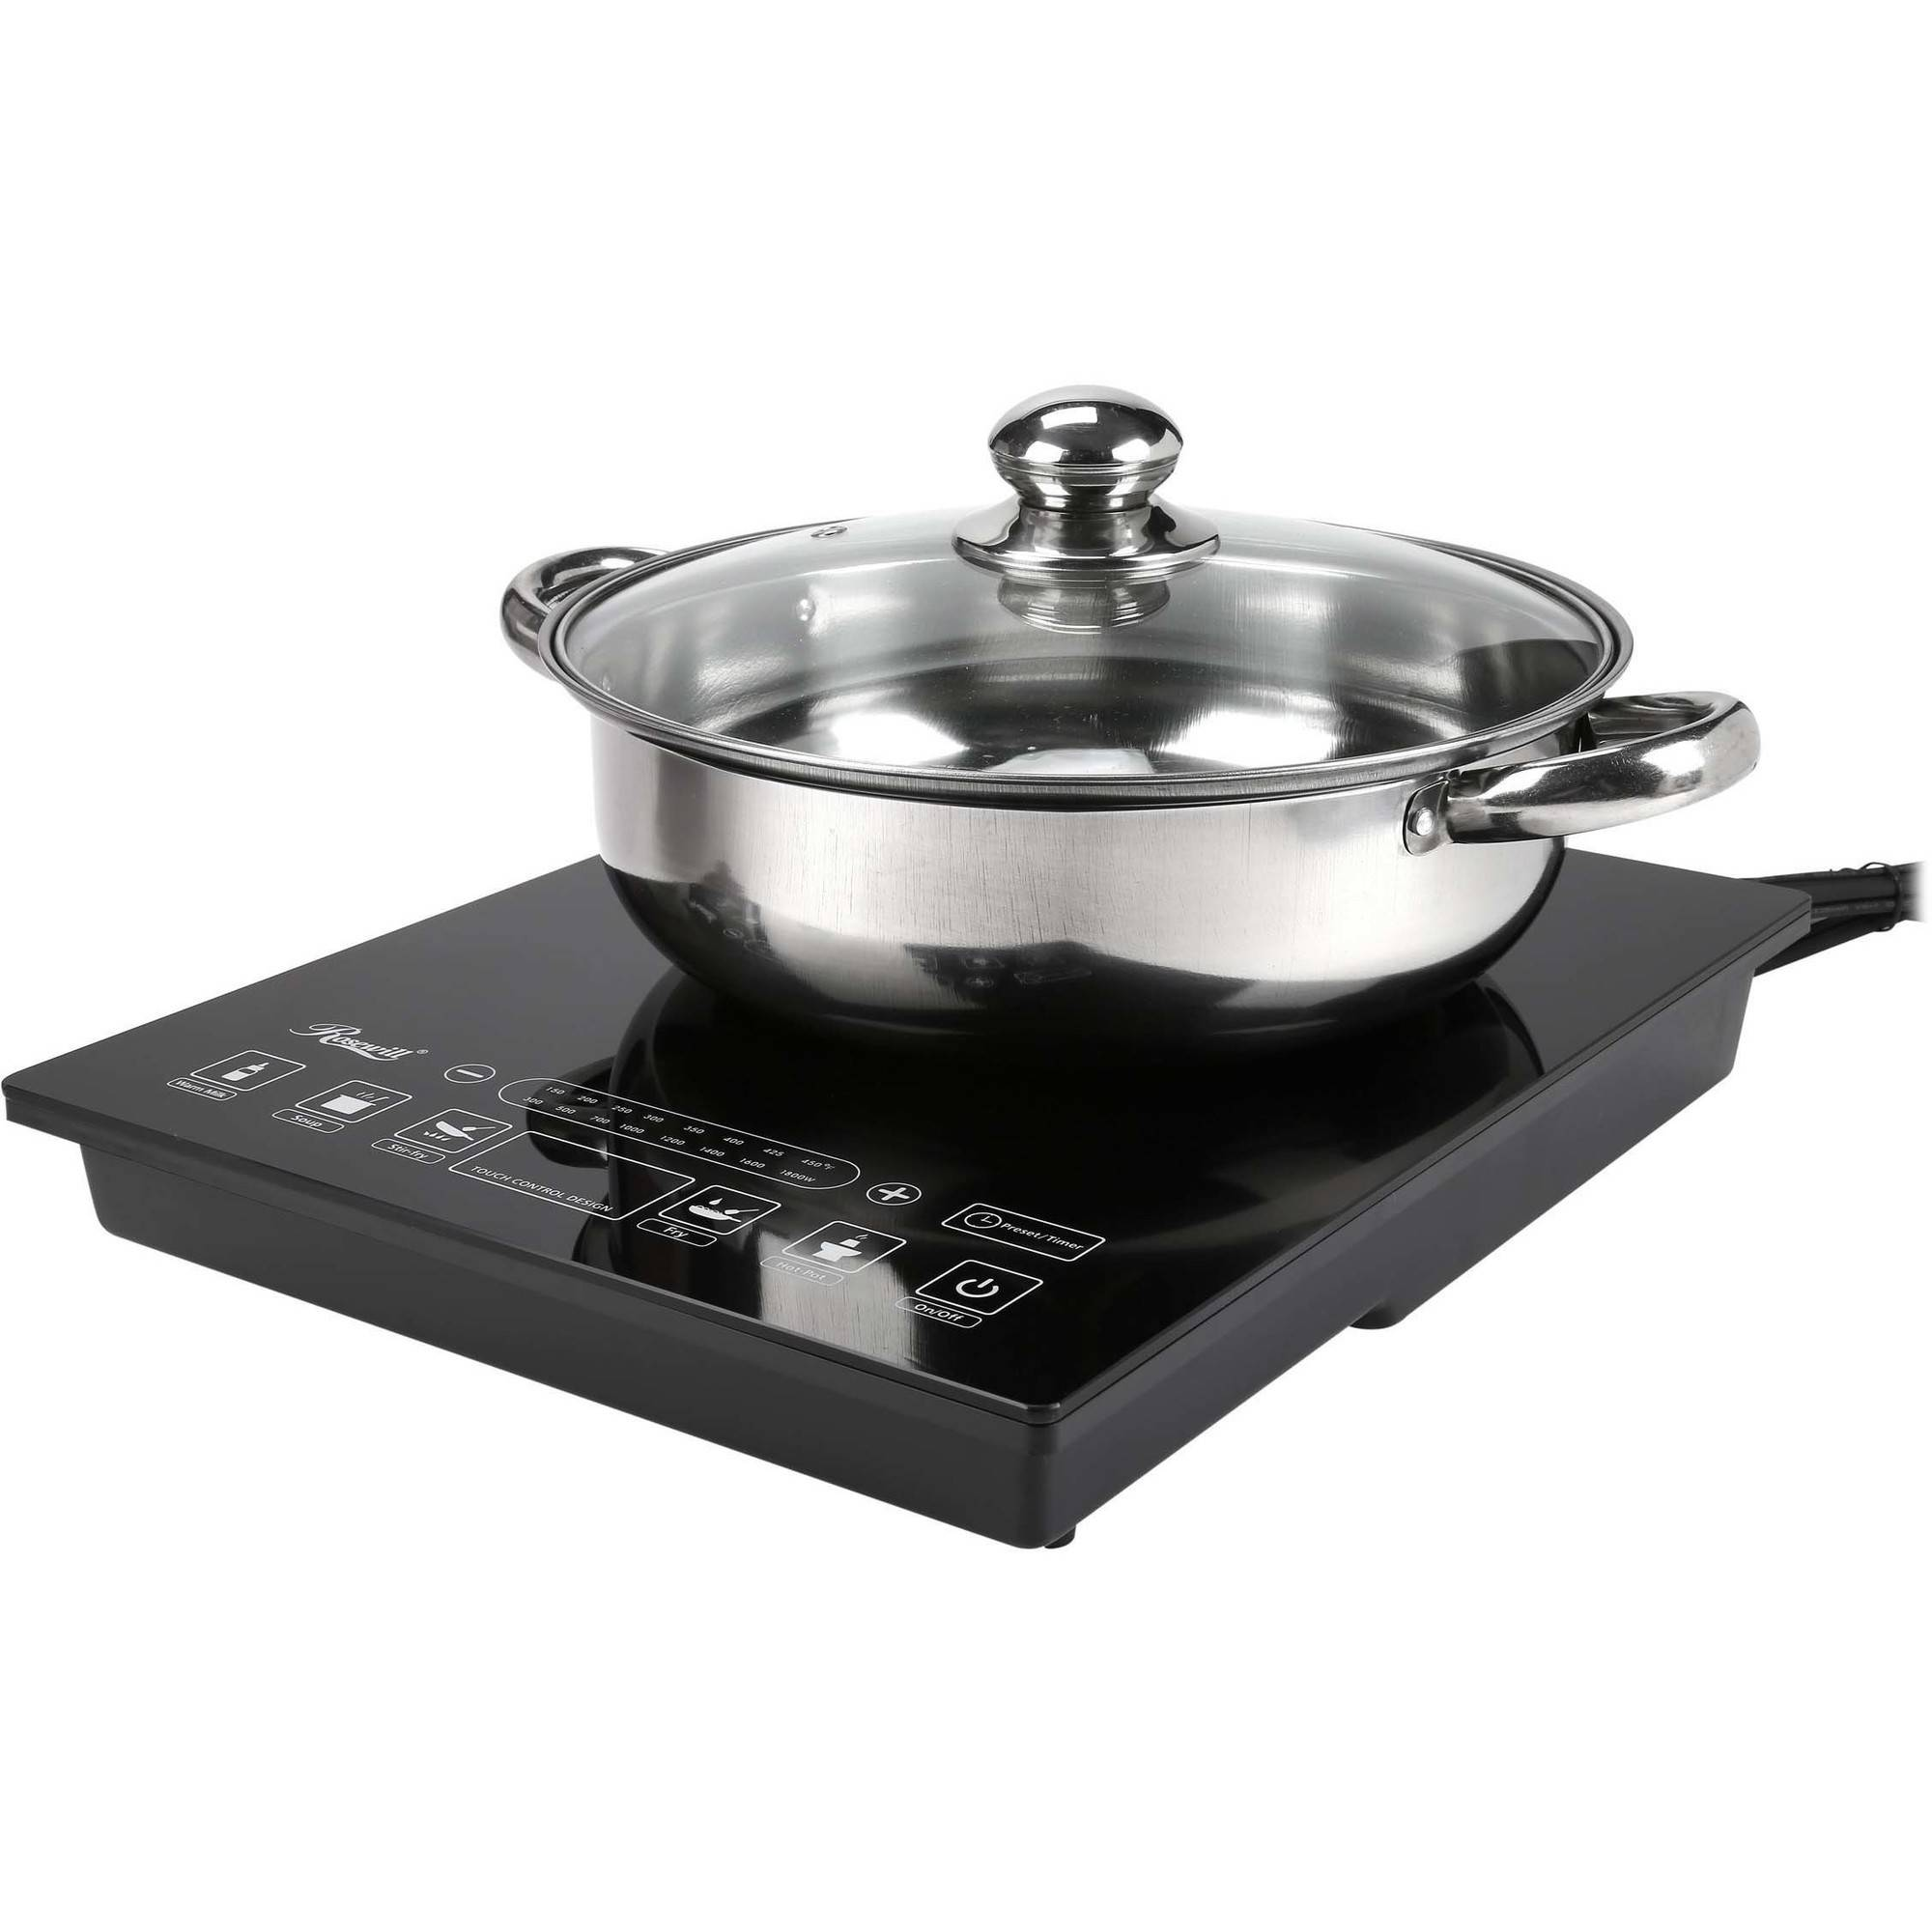 Fagor 1800w portable induction cooker 670041900 price tracking - Rosewill Rhai 15001 1800w 5 Pre Programmed Settings Induction Cooker Cooktop With Stainless Steel Price